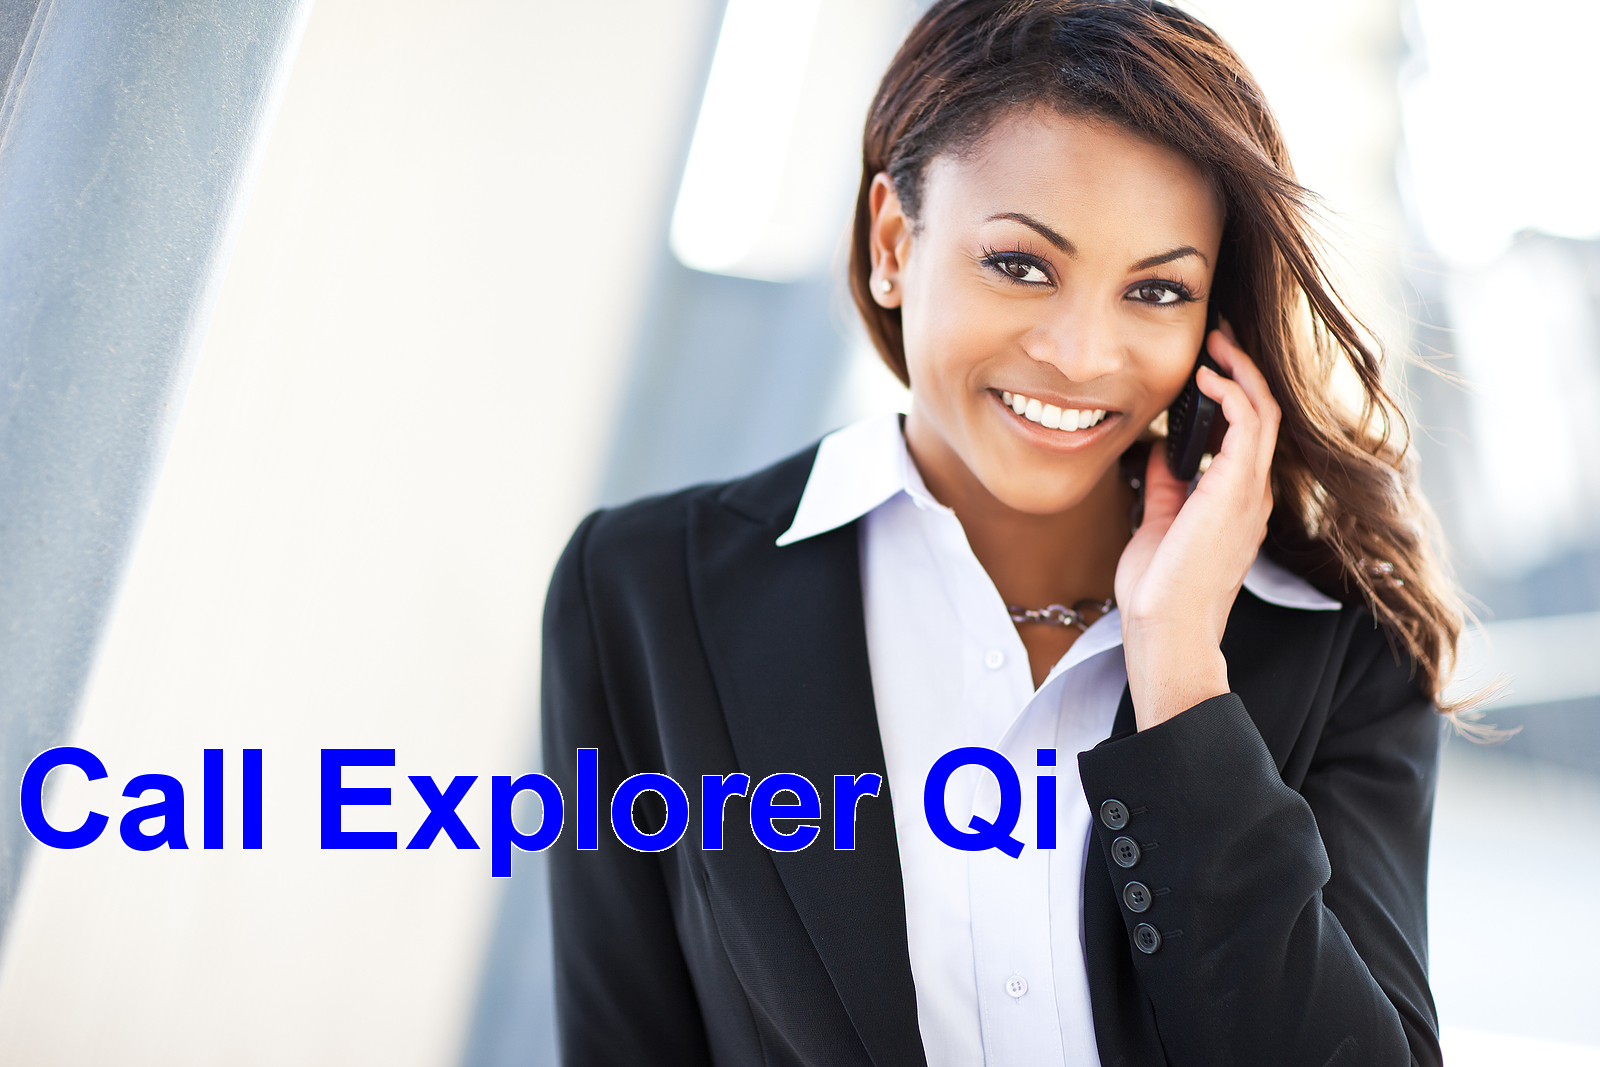 Call Explorer Qi